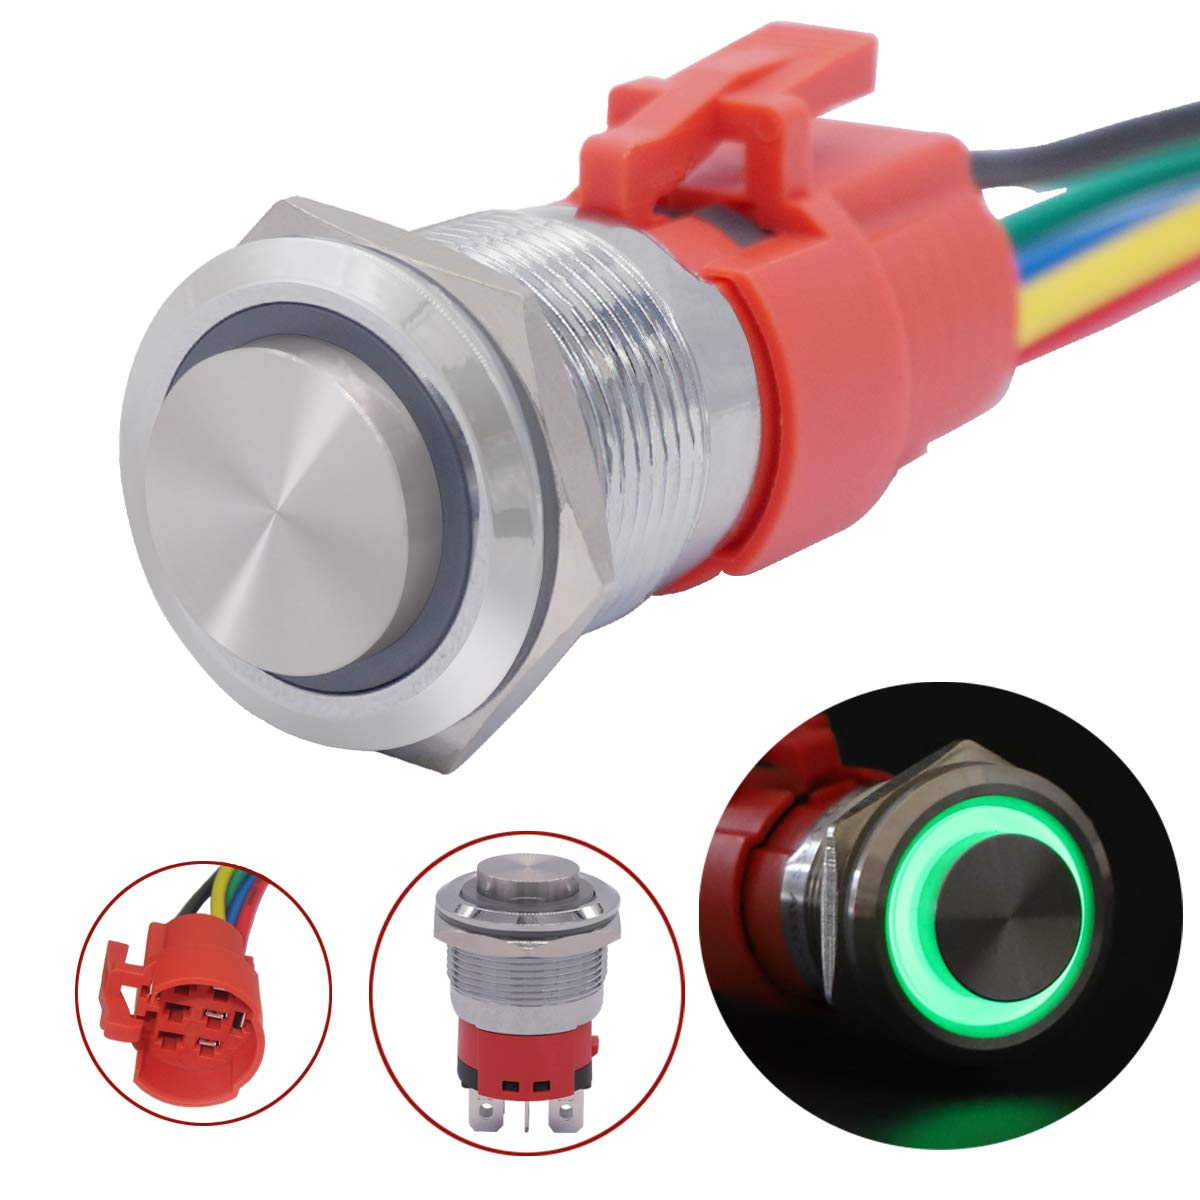 LED Ring Switch 1NO 1NC with Wire Socket Plug YJ-GQ19BH-L-G Green TWTADE 19mm IP65 Waterproof Latching High Head Metal Push Button Switch 3//4 5A DC12V Stainless Steel Shell 5 Year Warranty